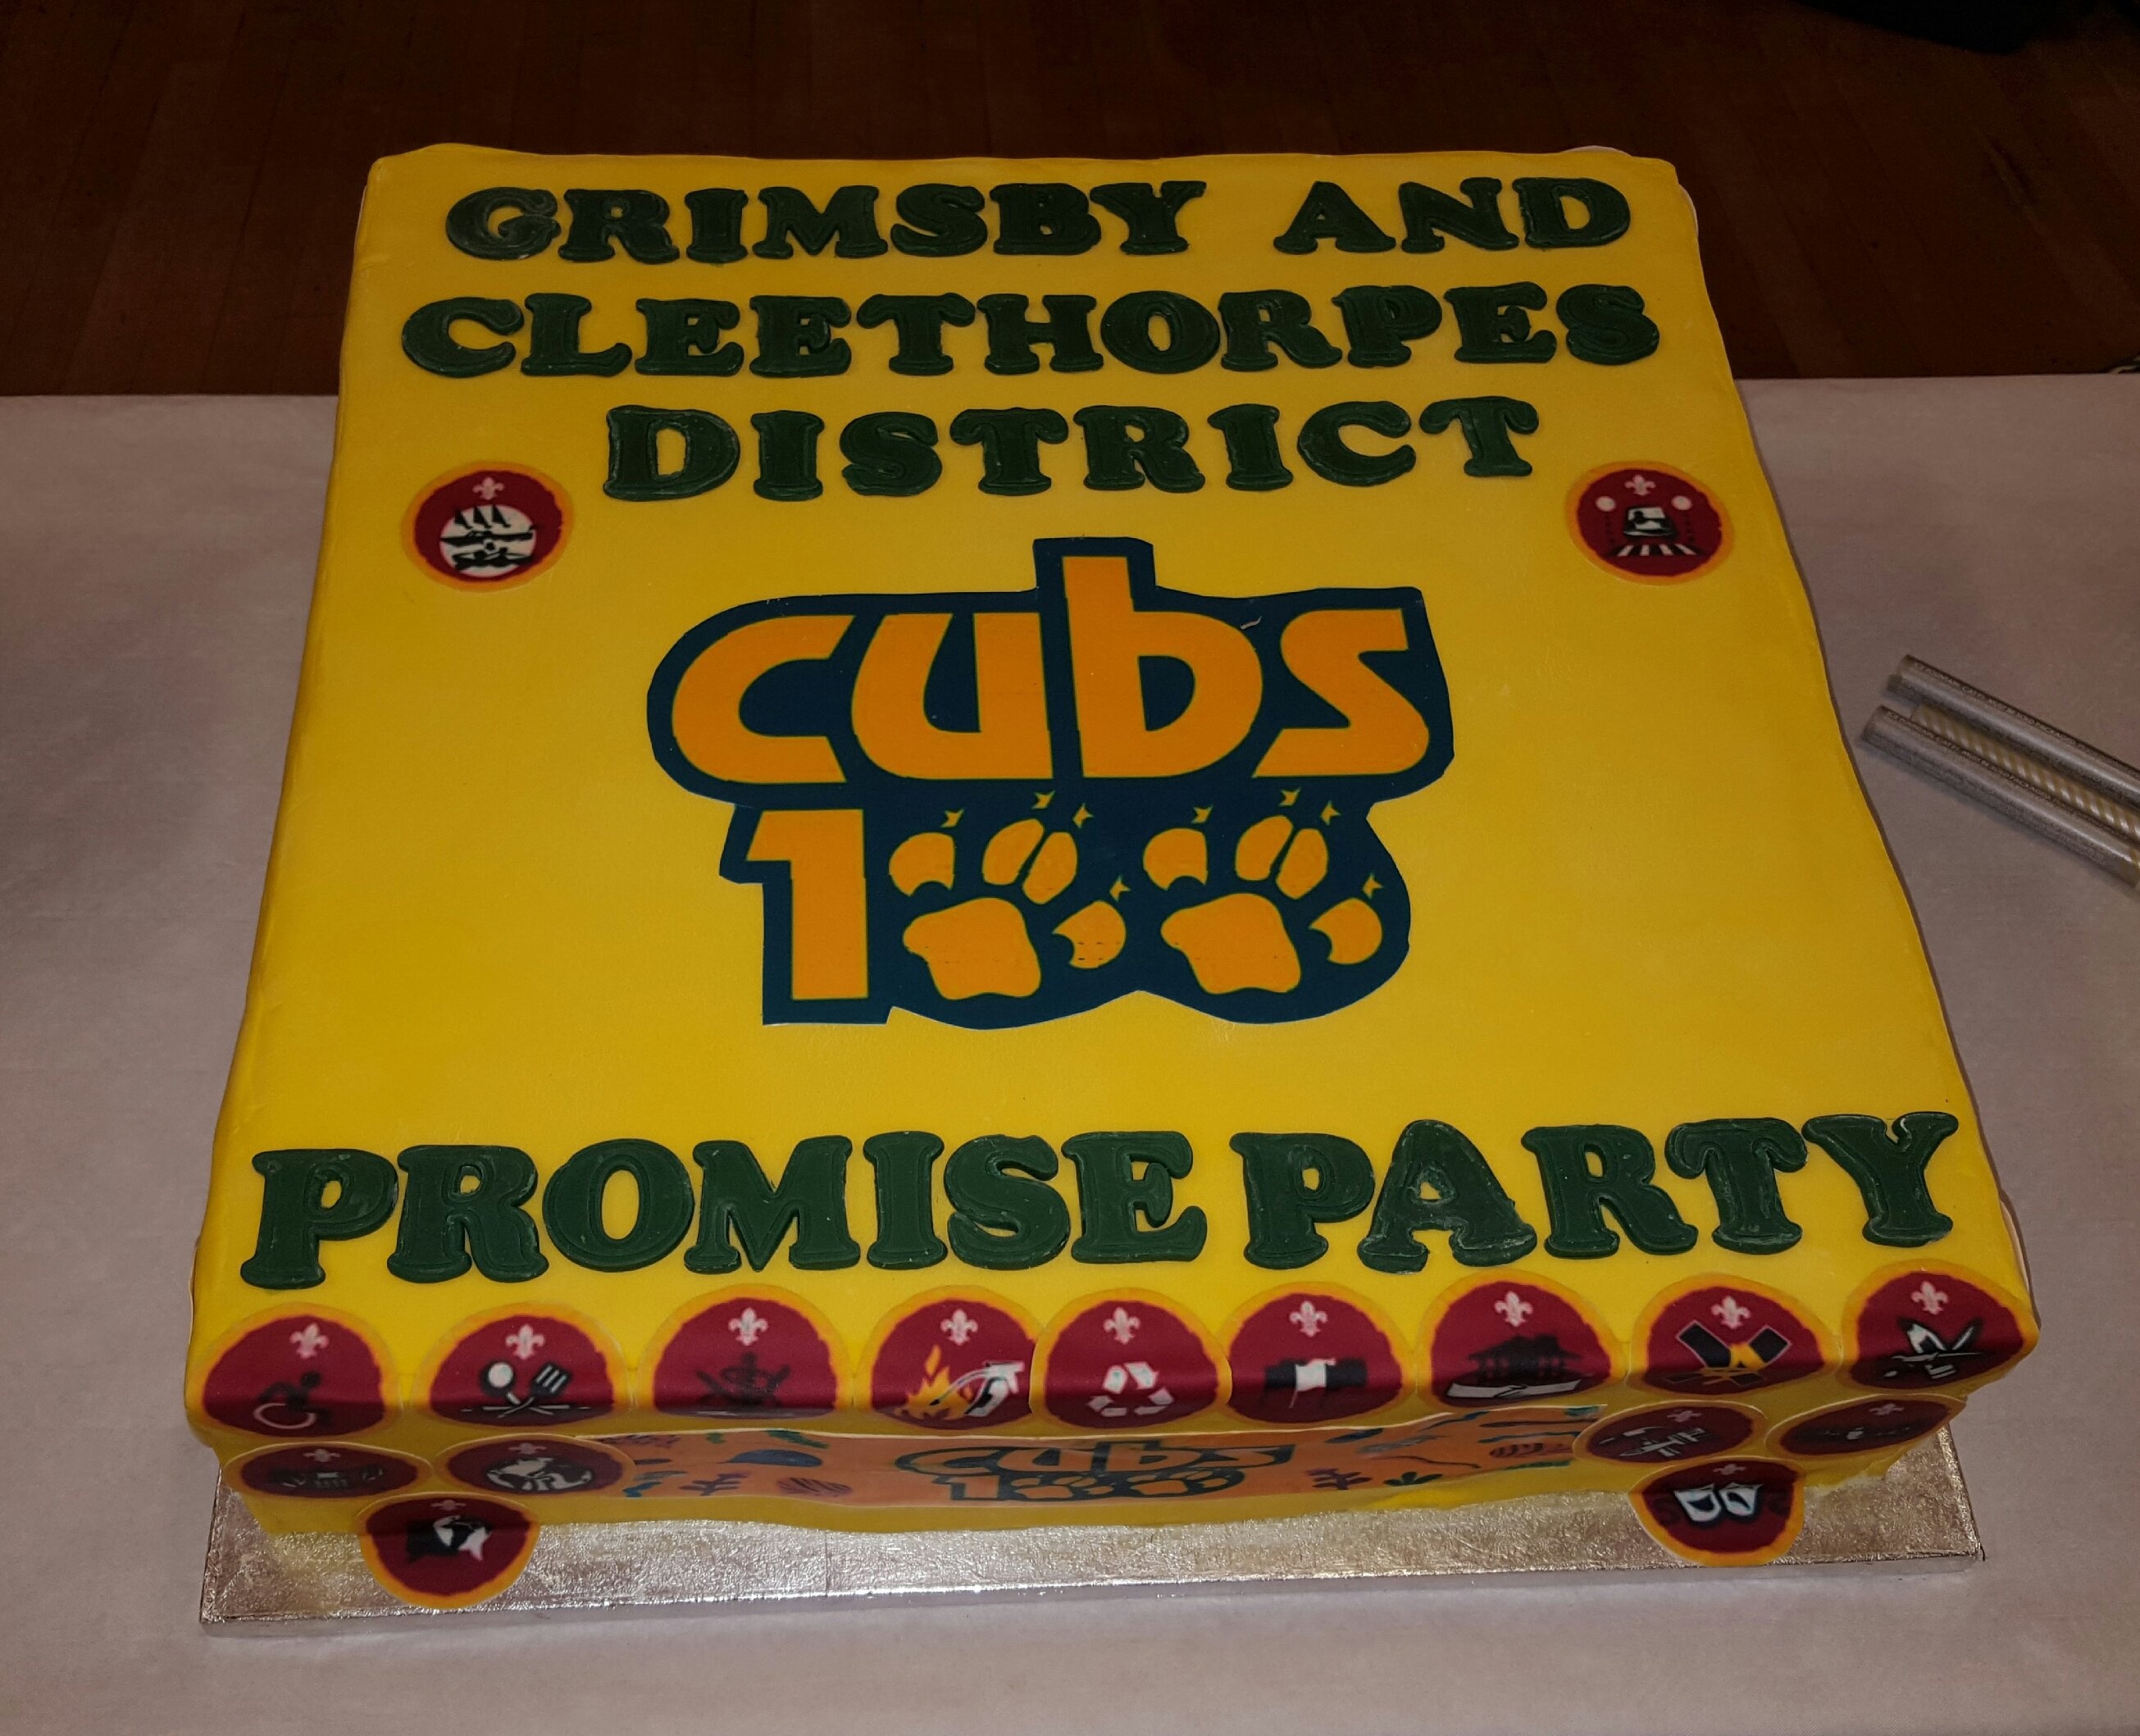 Cubs100 Promise Party